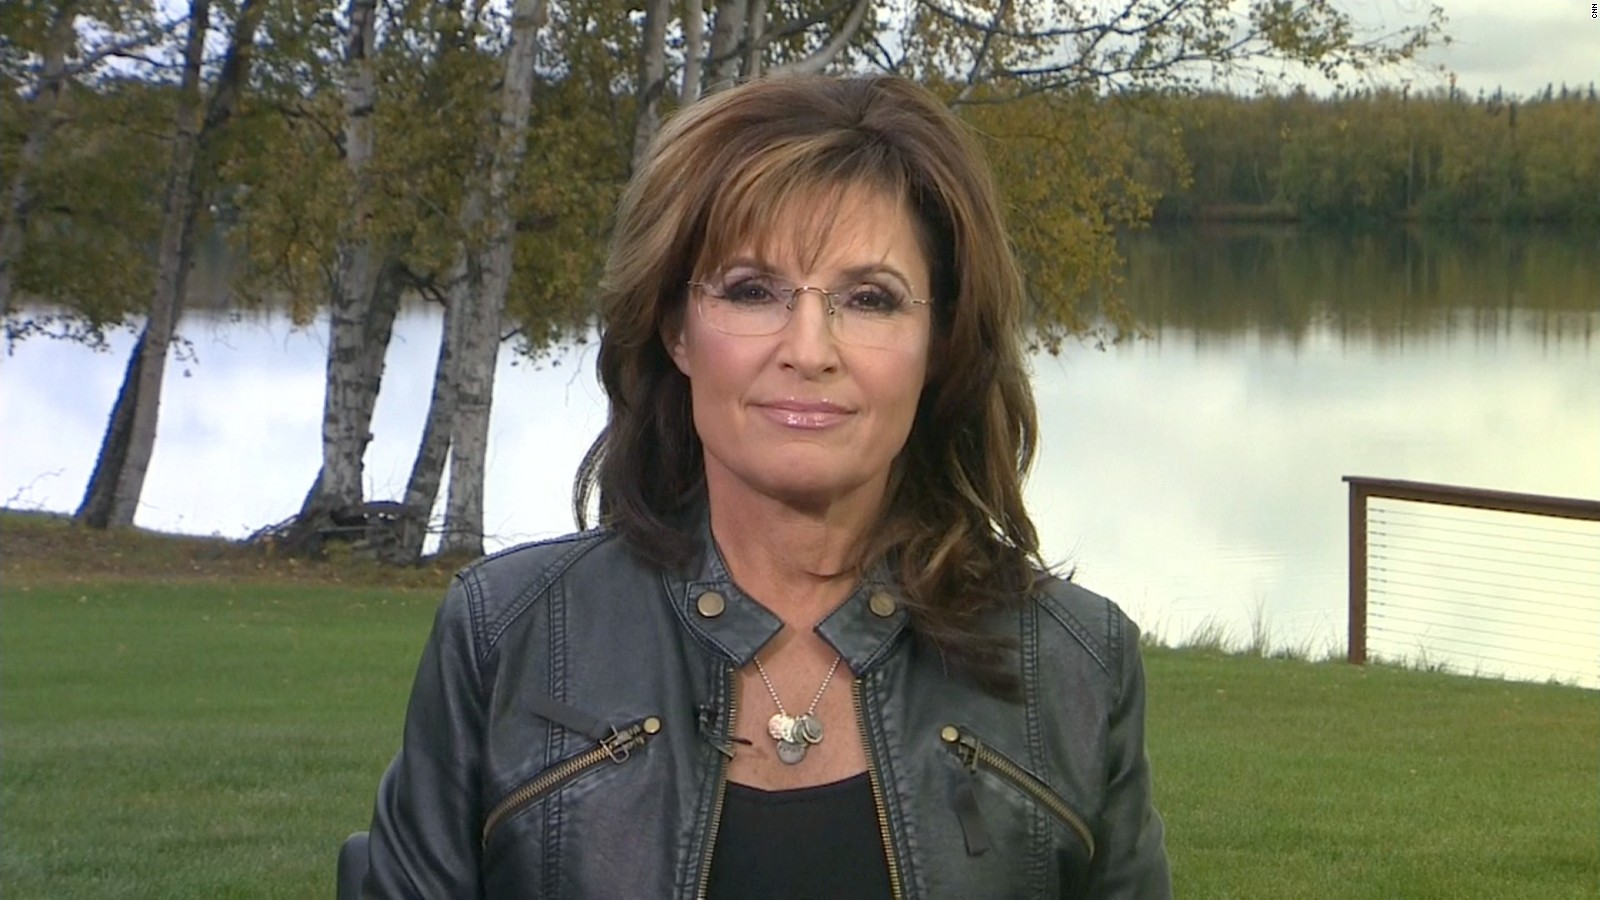 Sarah Palin recommends herself for energy secretary - CNN Video